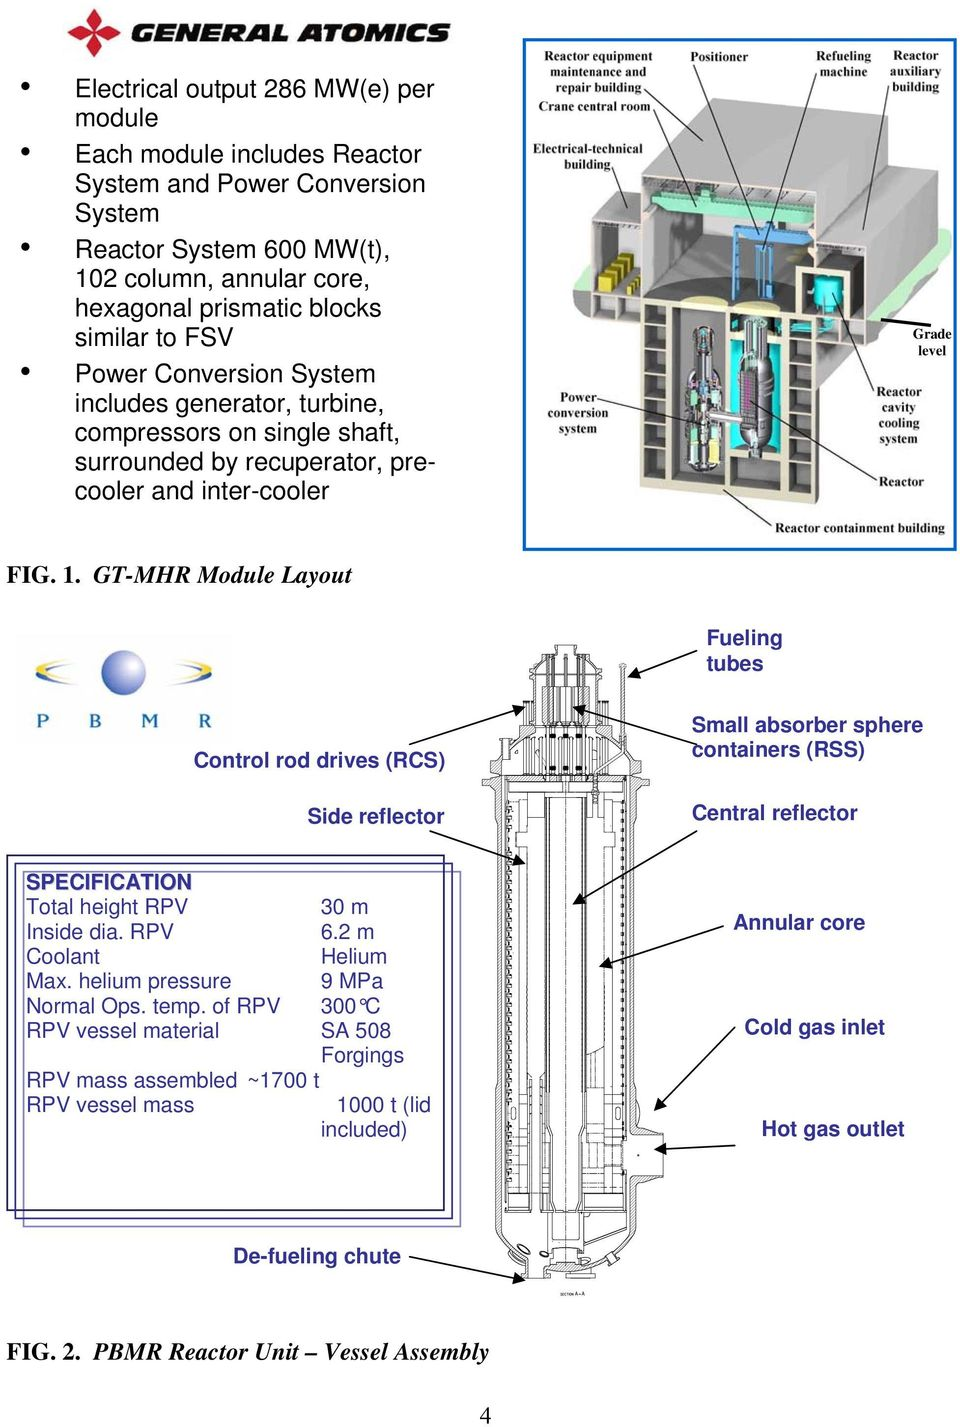 GT-MHR Module Layout Fueling tubes Control rod drives (RCS) Side reflector Small absorber sphere containers (RSS) Central reflector SPECIFICATION Total height RPV 30 m Inside dia. RPV 6.